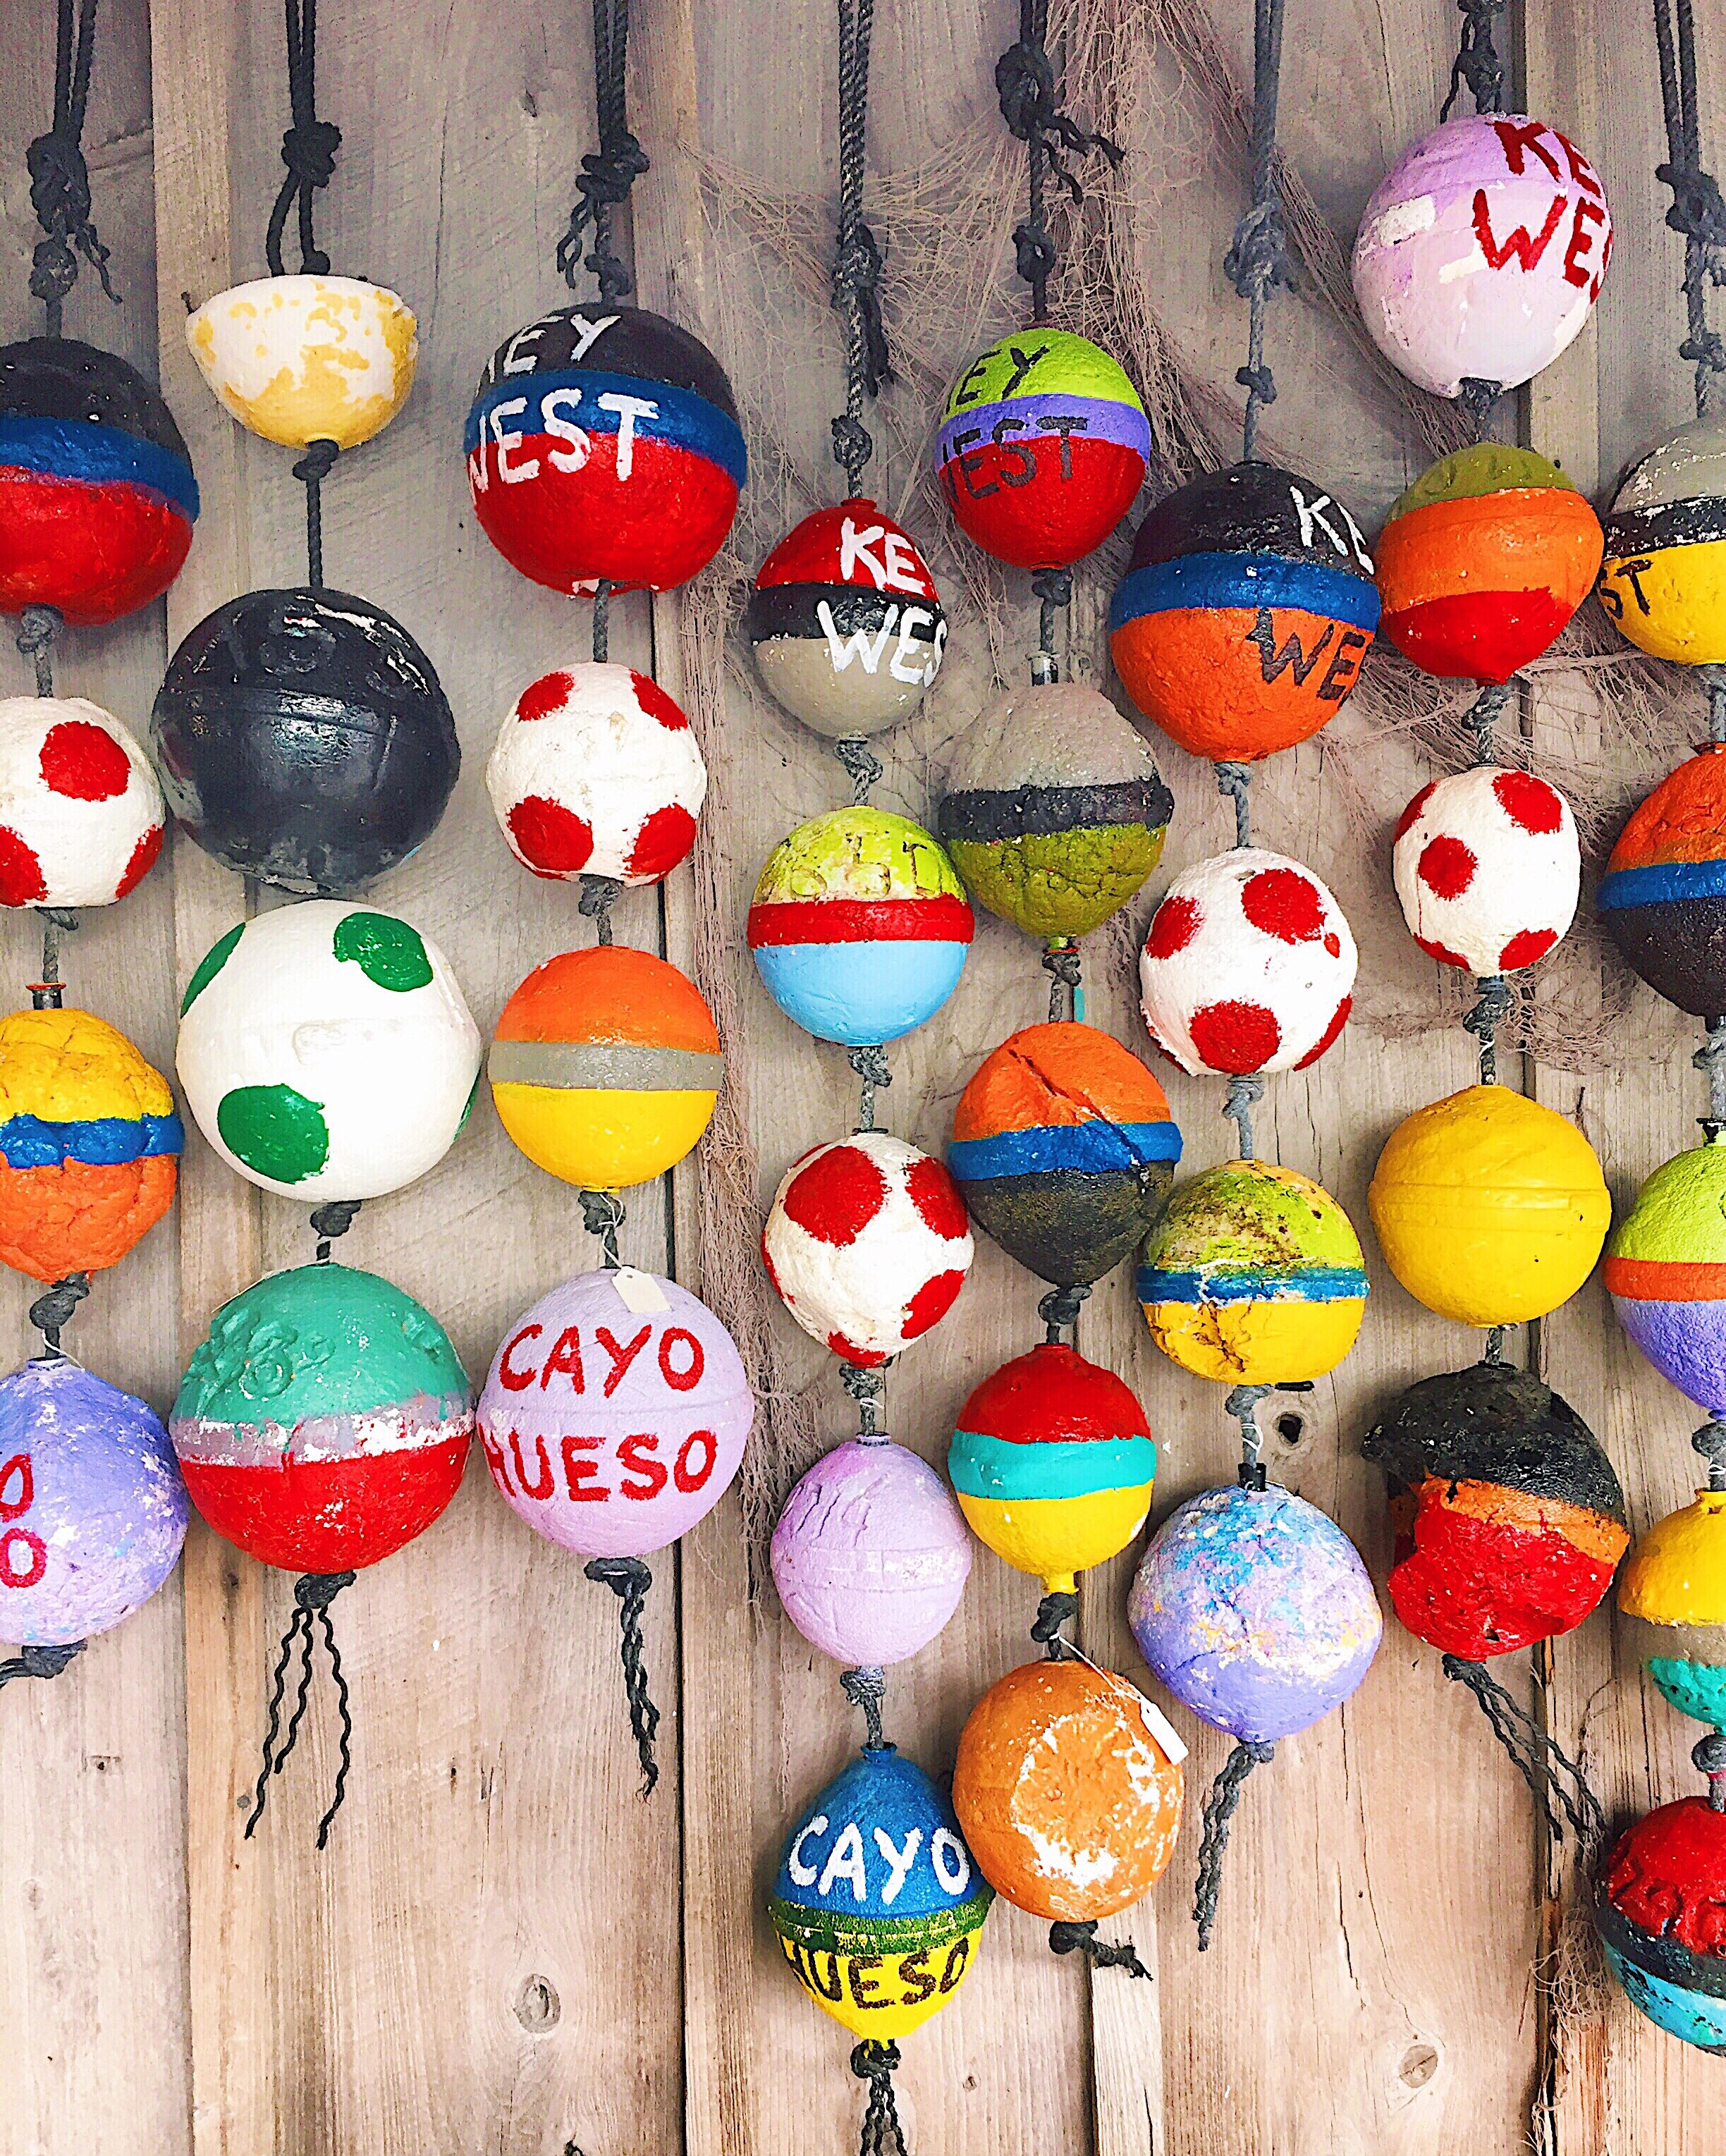 amy_chen_design_key_west_florida_buoys.jpg